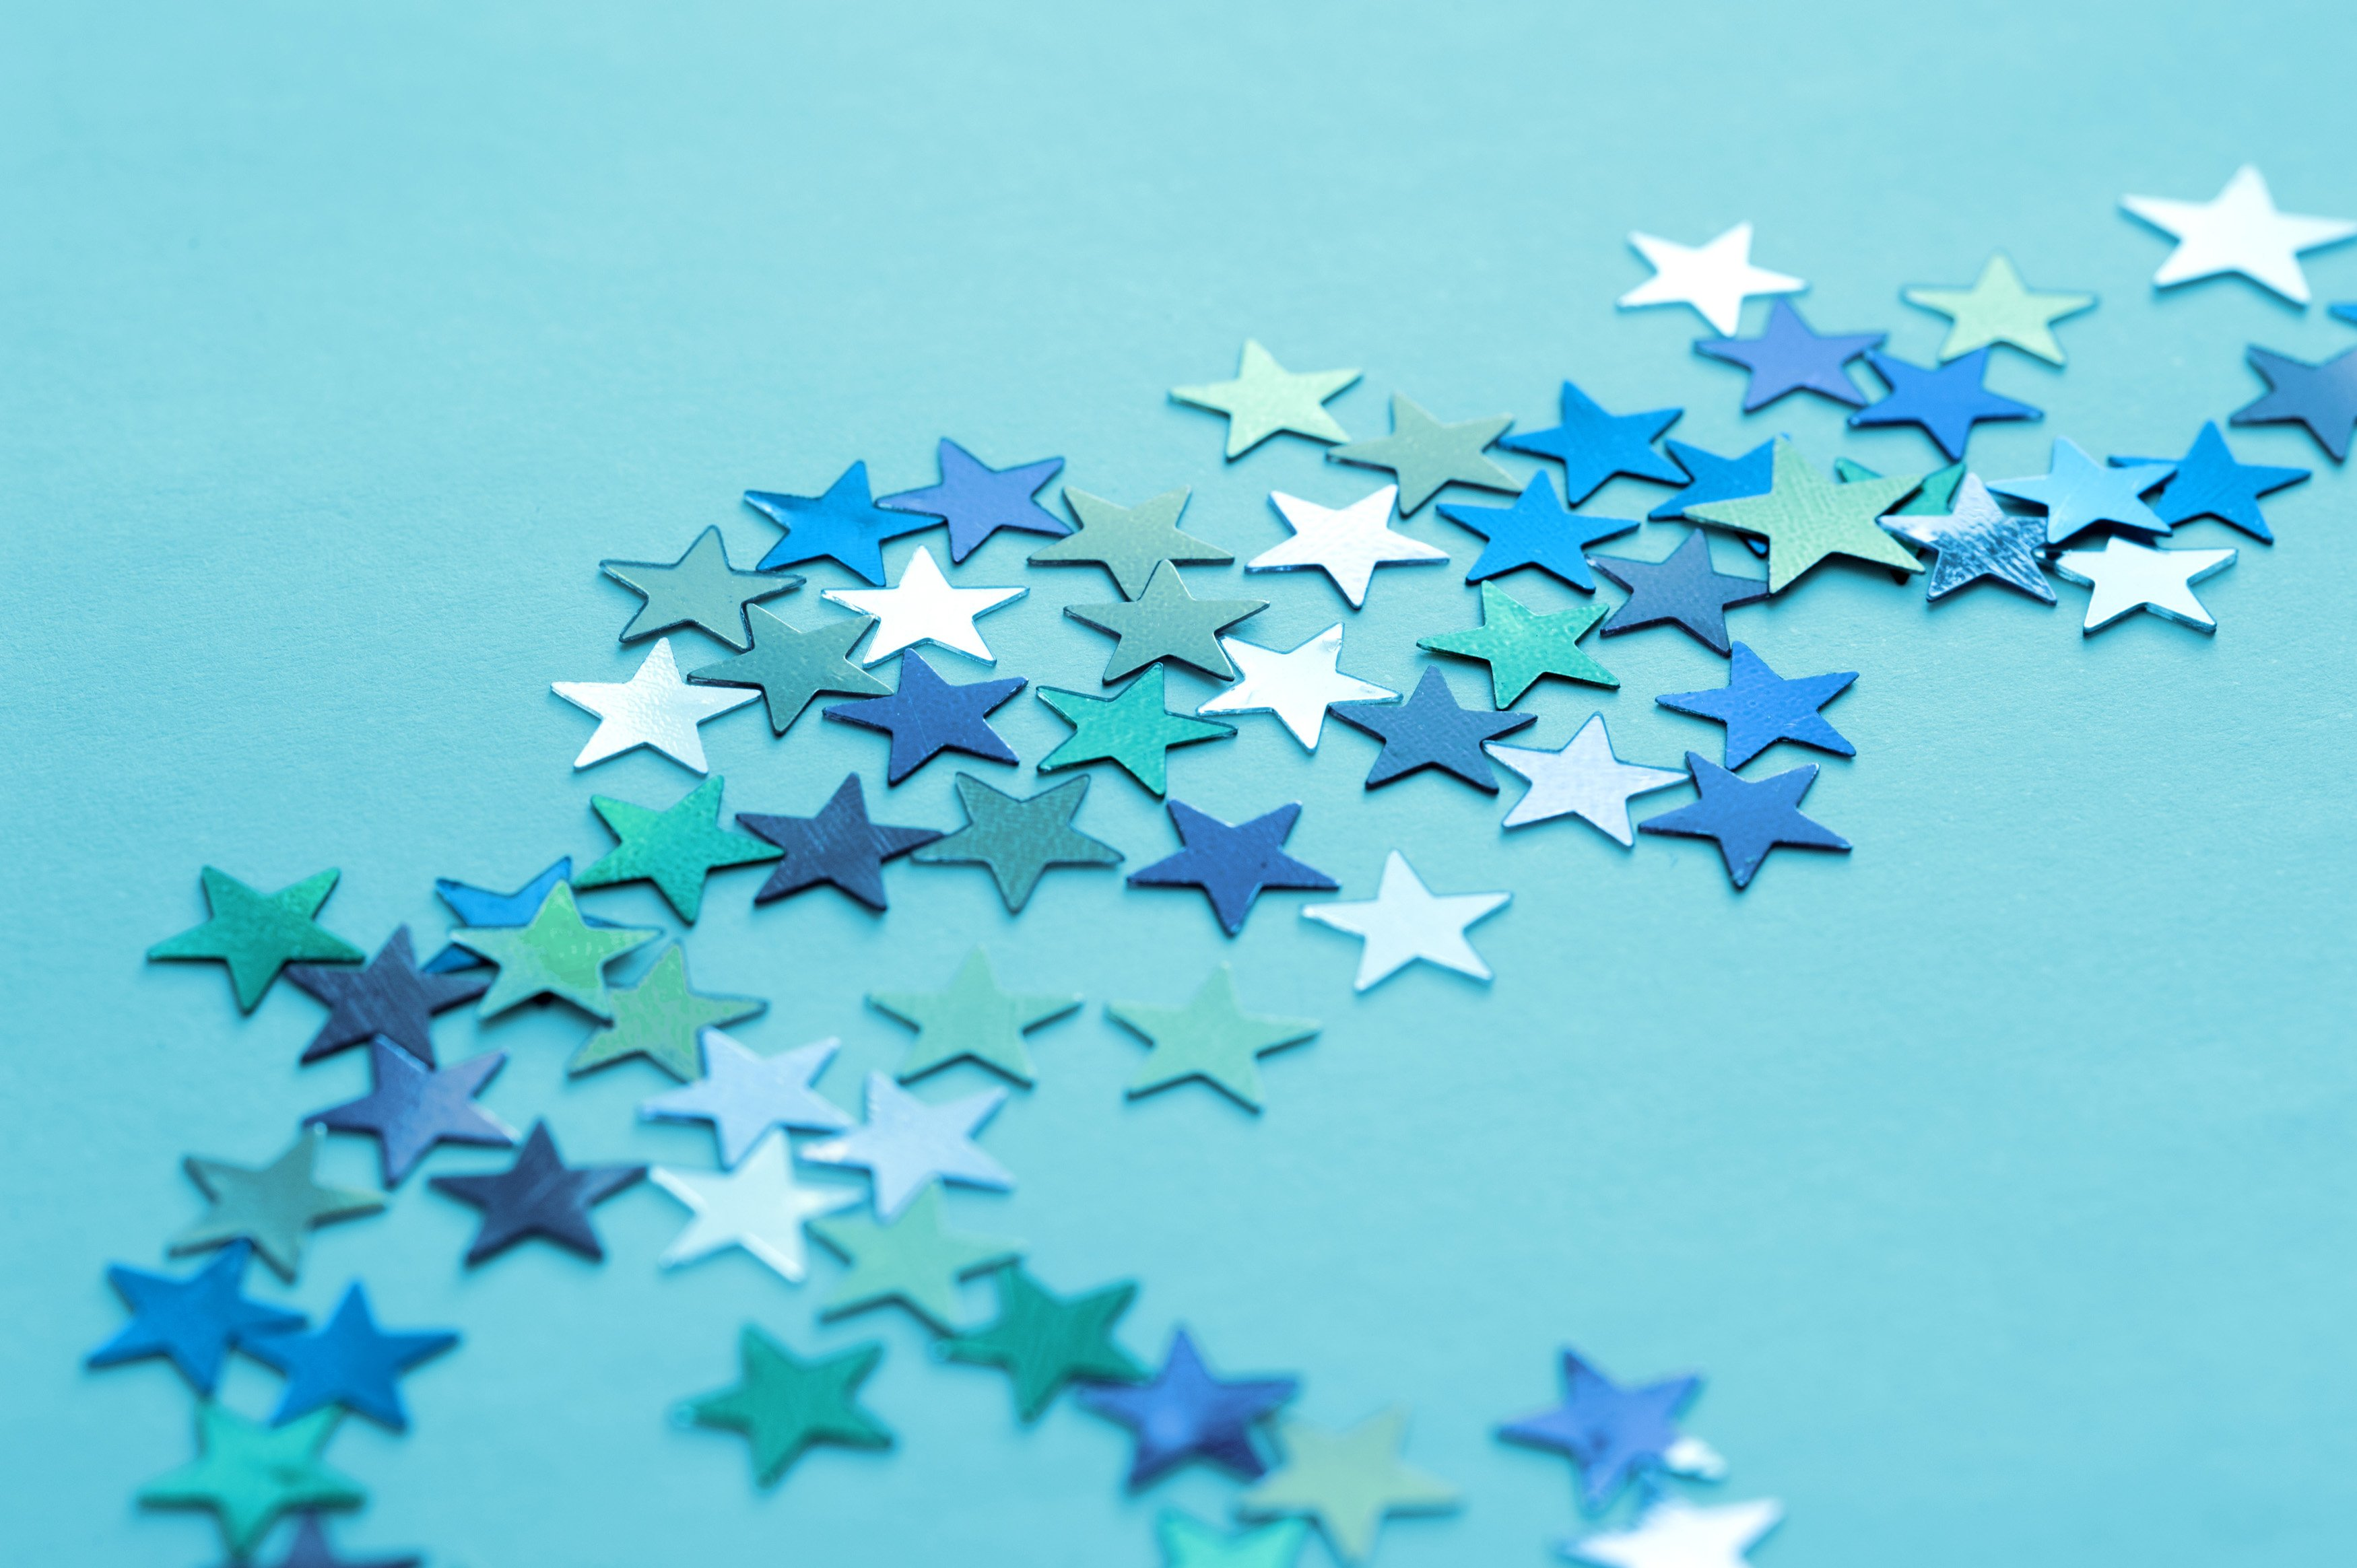 image of Blue and Silver Stars Scattered on Teal Background 3500x2329